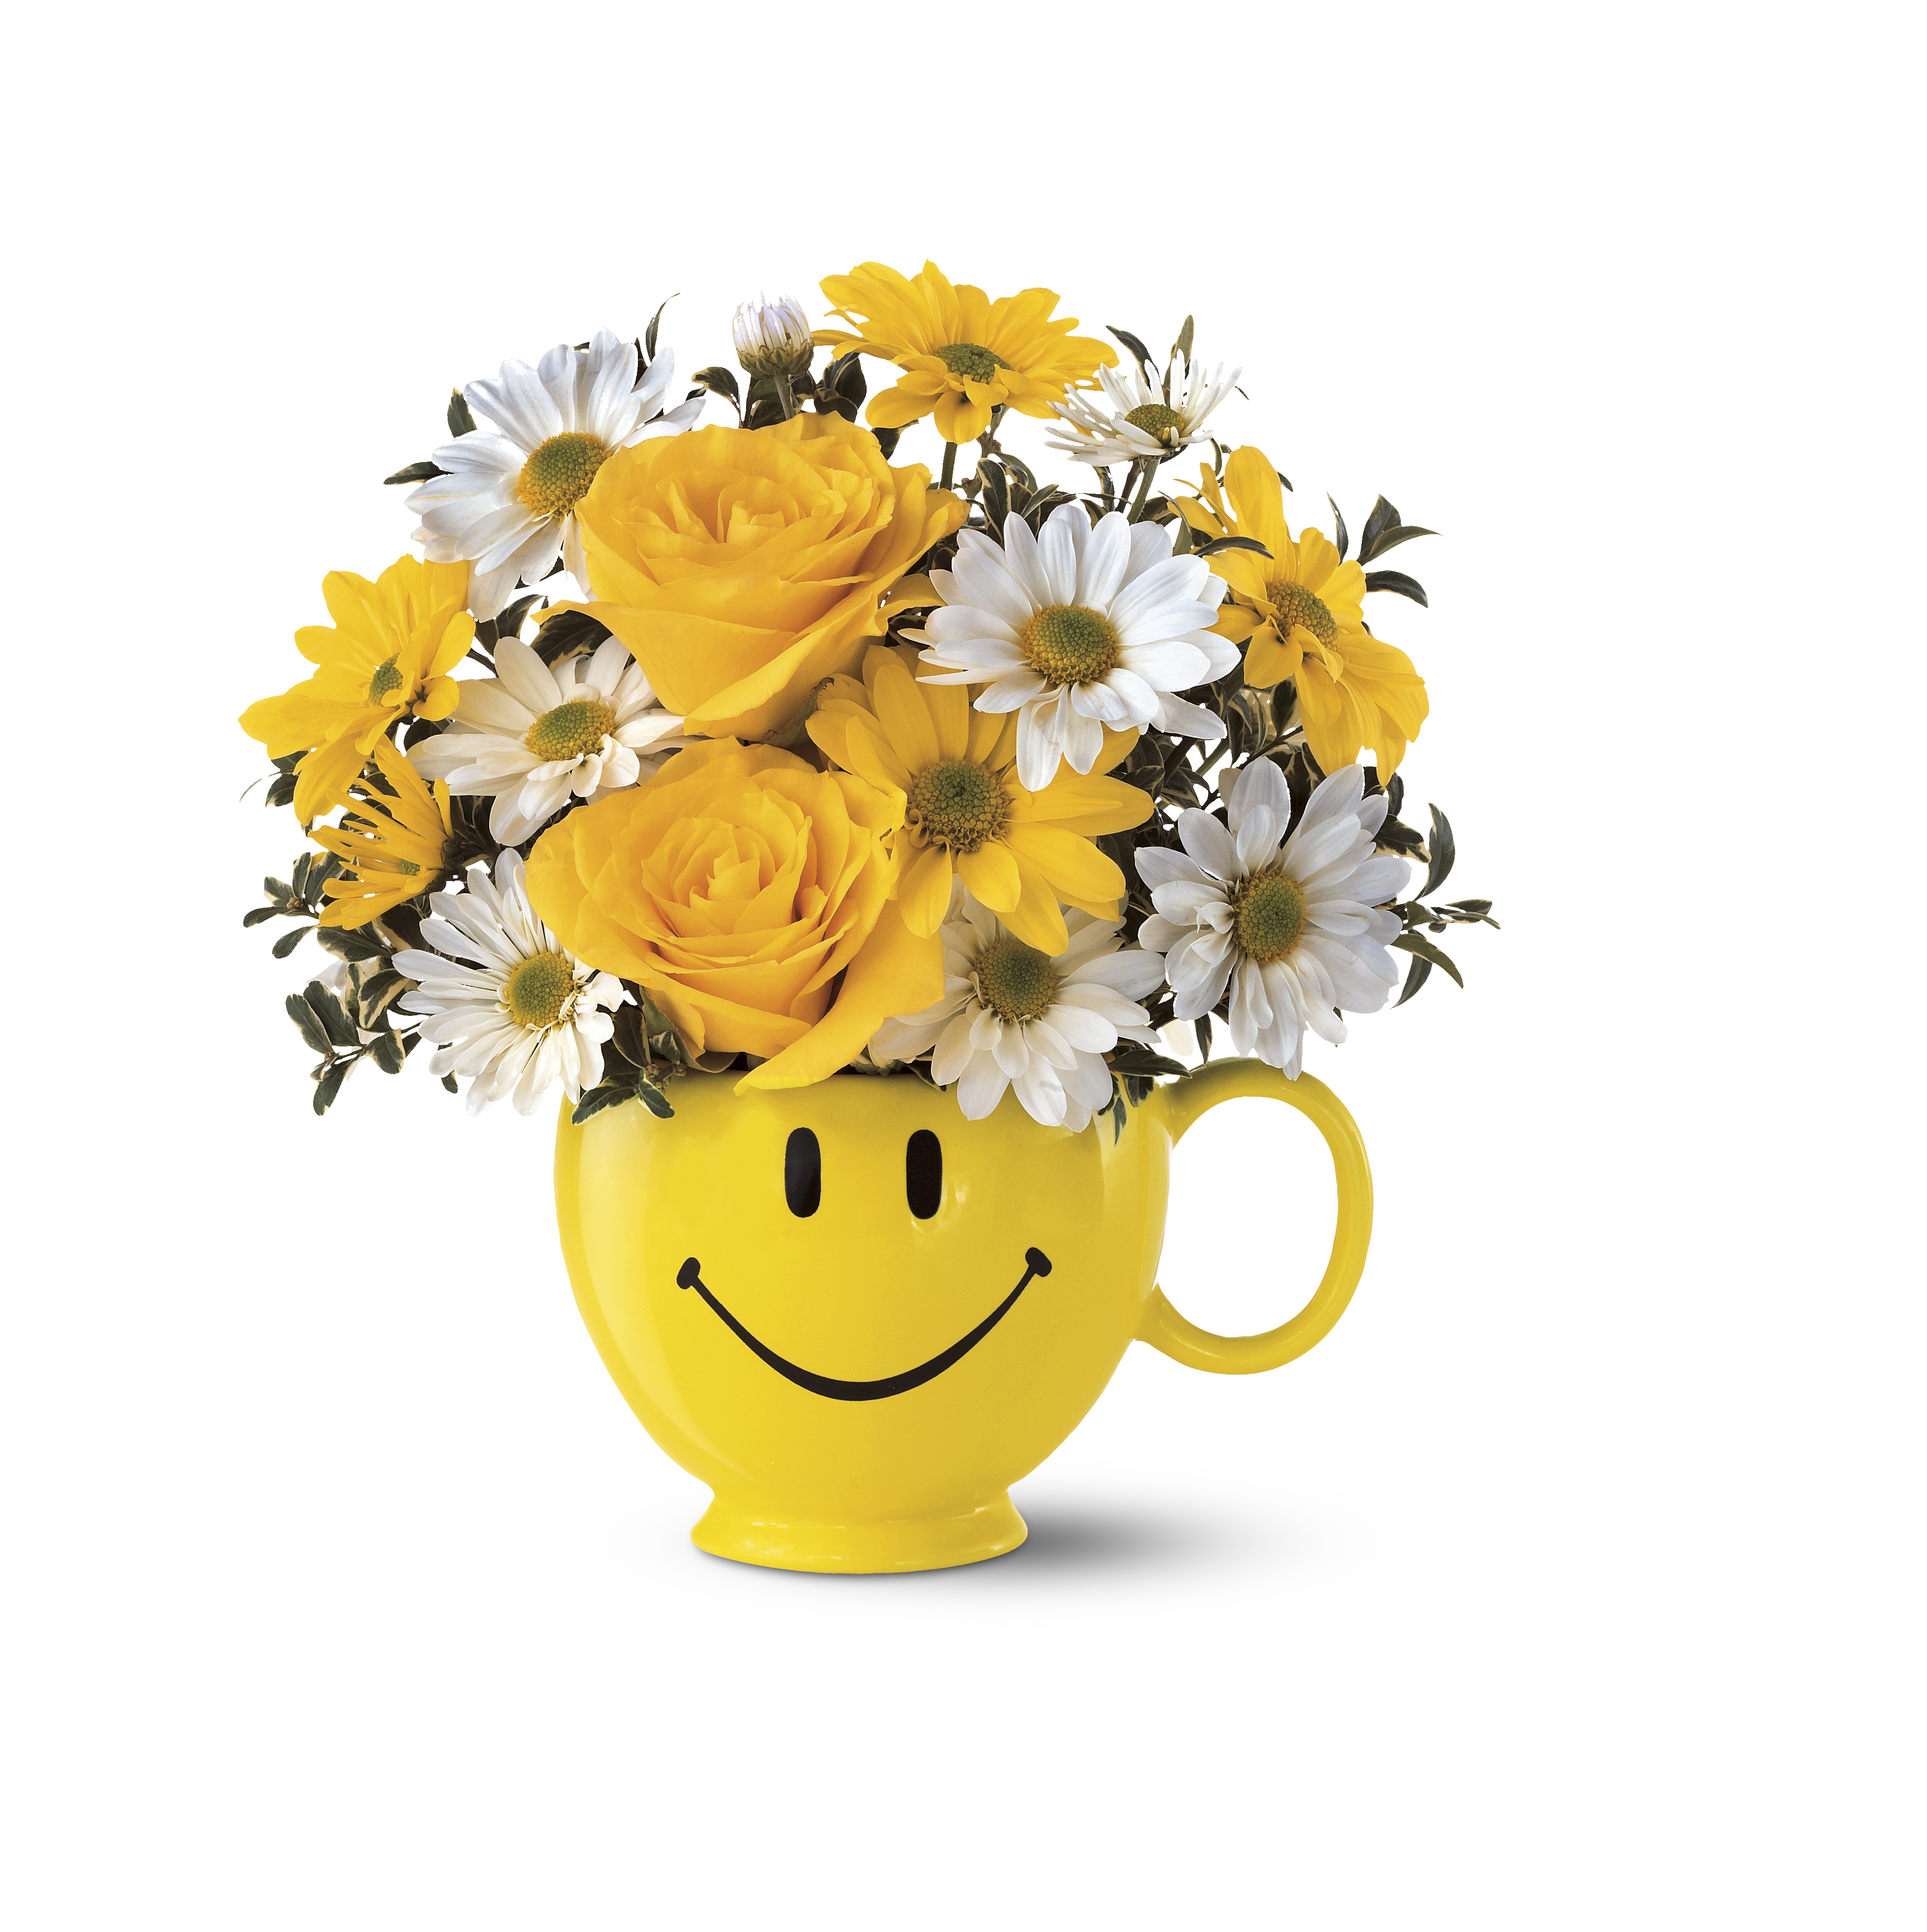 Teleflora's Be Happy Bouquet for Make Someone Smile® Week. (Photo courtesy of Teleflora.)